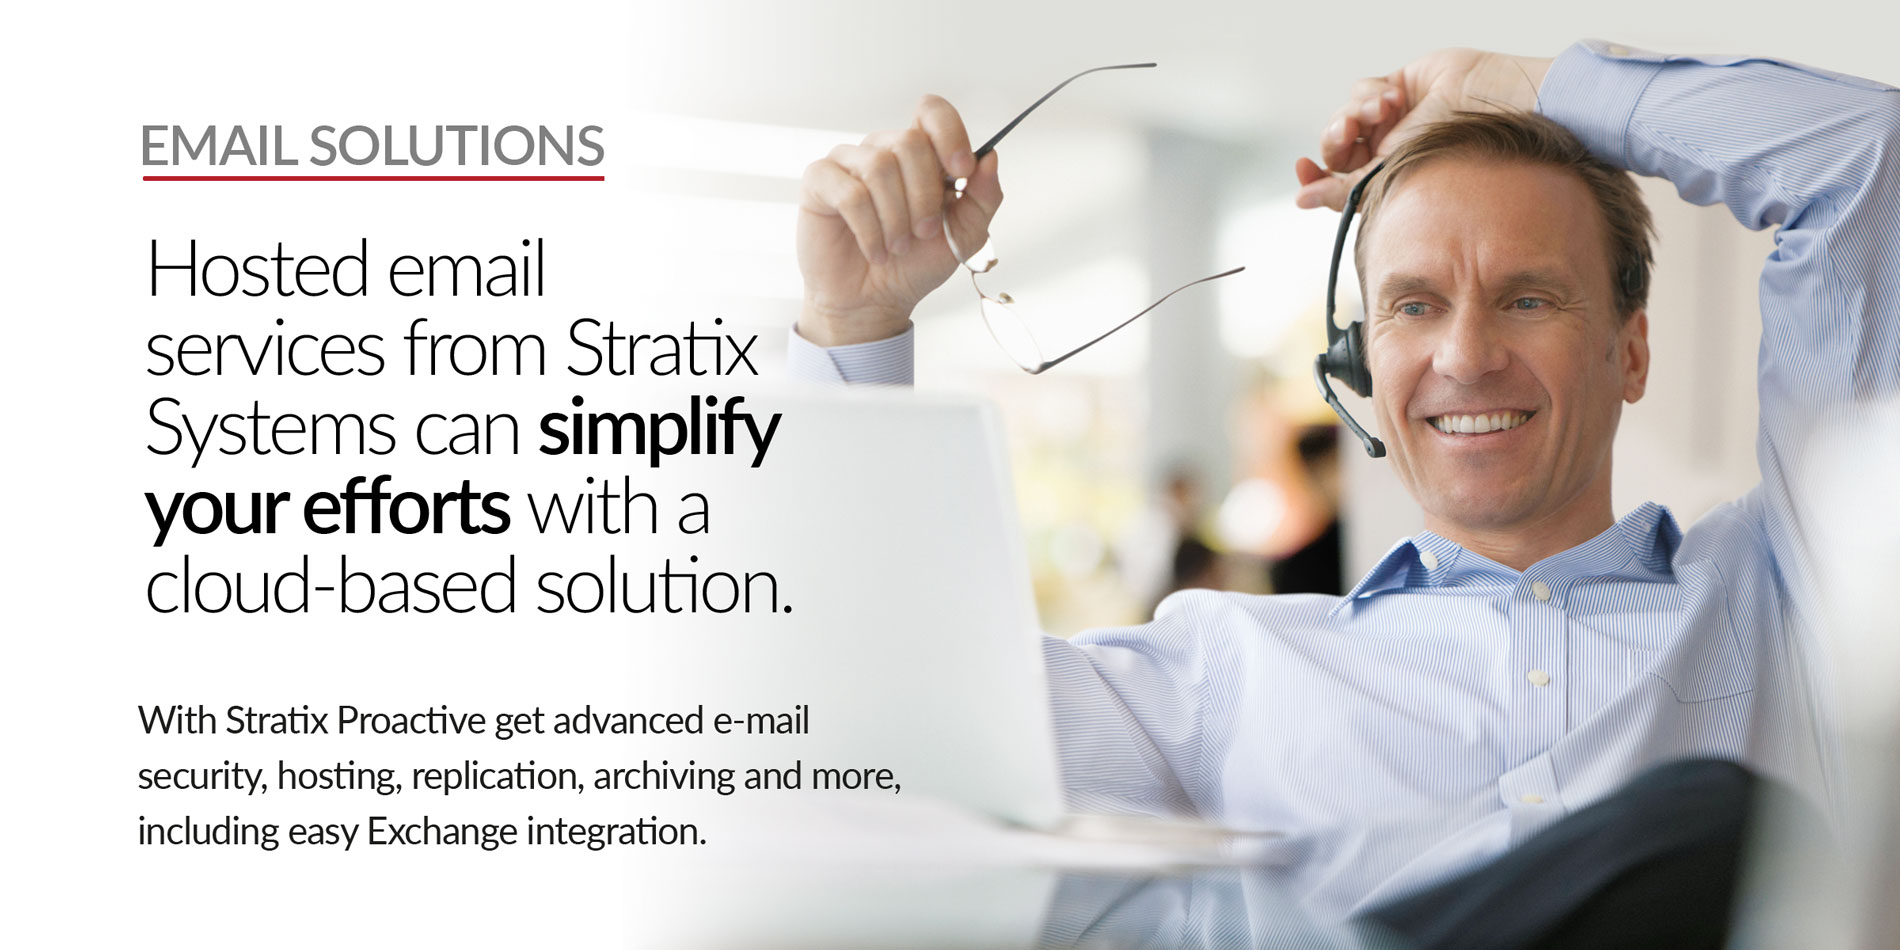 Stratix Systems Email Solutions Header